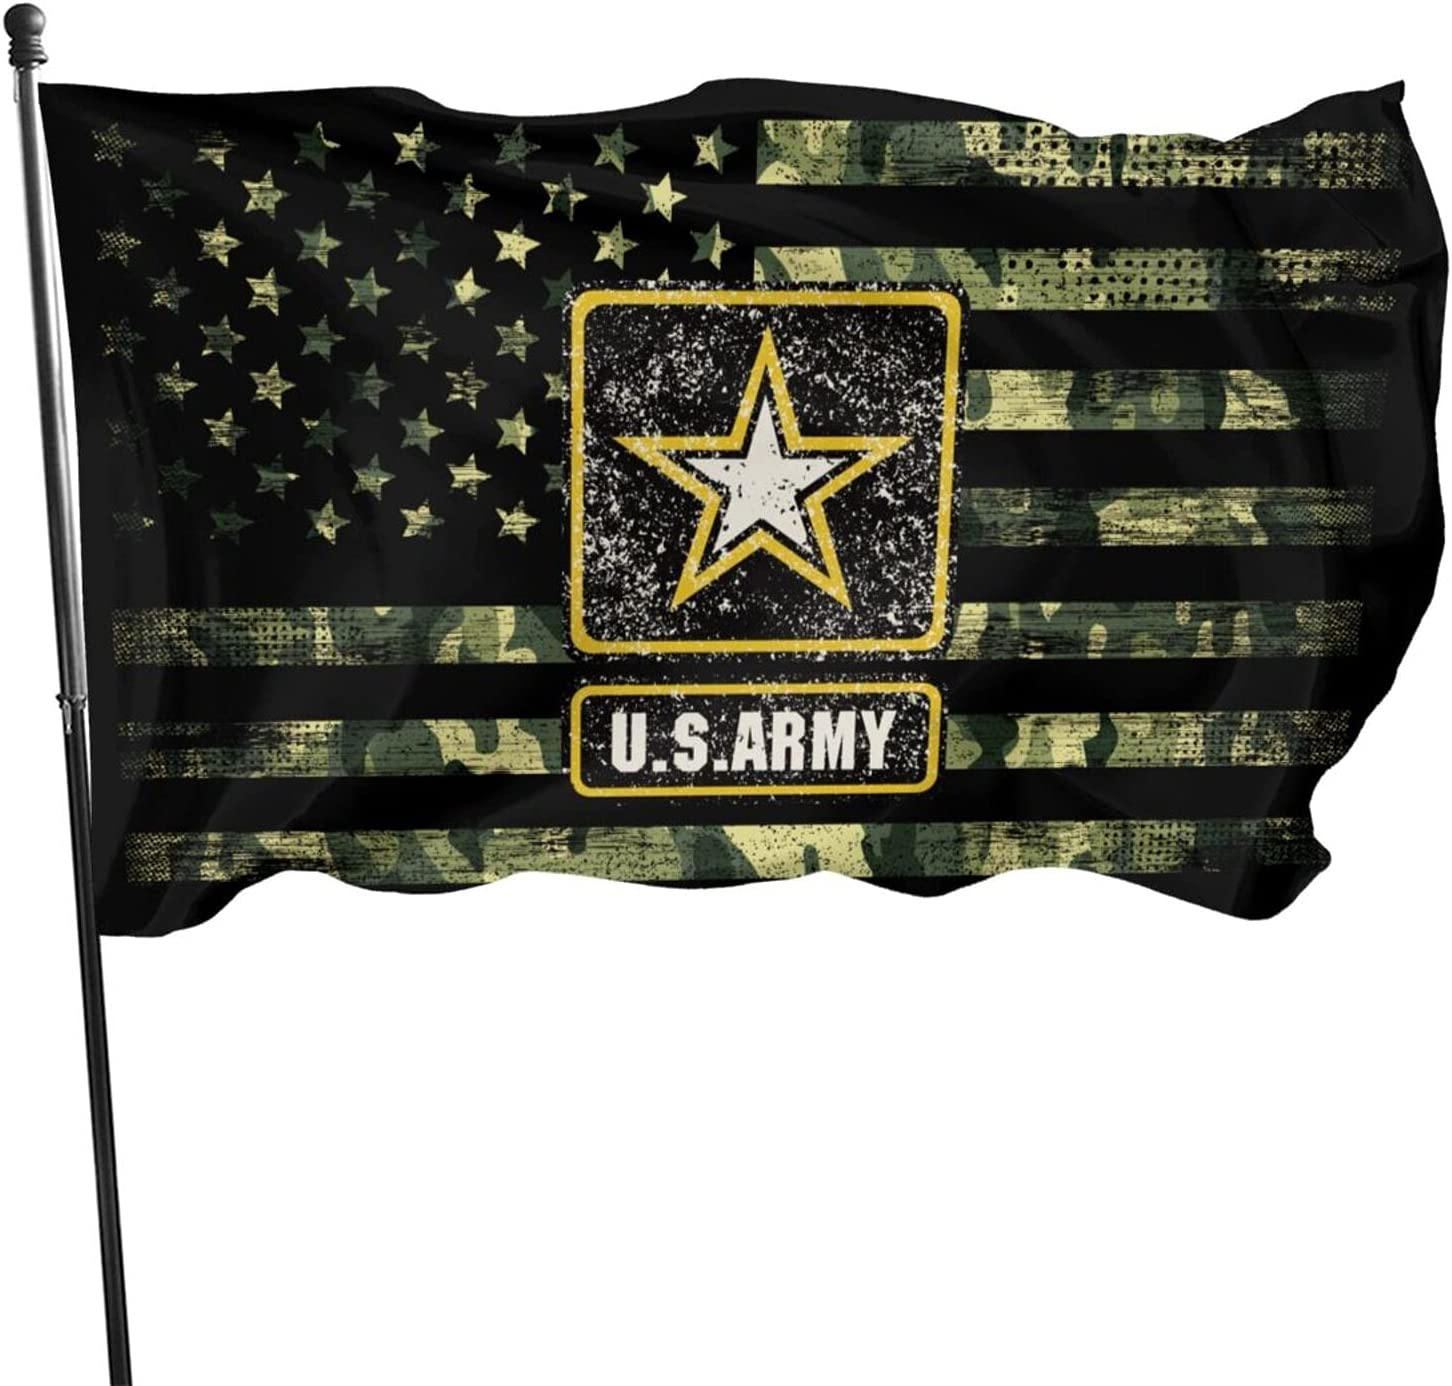 US Army Flag 3x5 Ft, Fade Proof Outdoor Breeze Flag Garden House Home Decor Double Stitched United States Military Flags with Metal Grommets(Green)